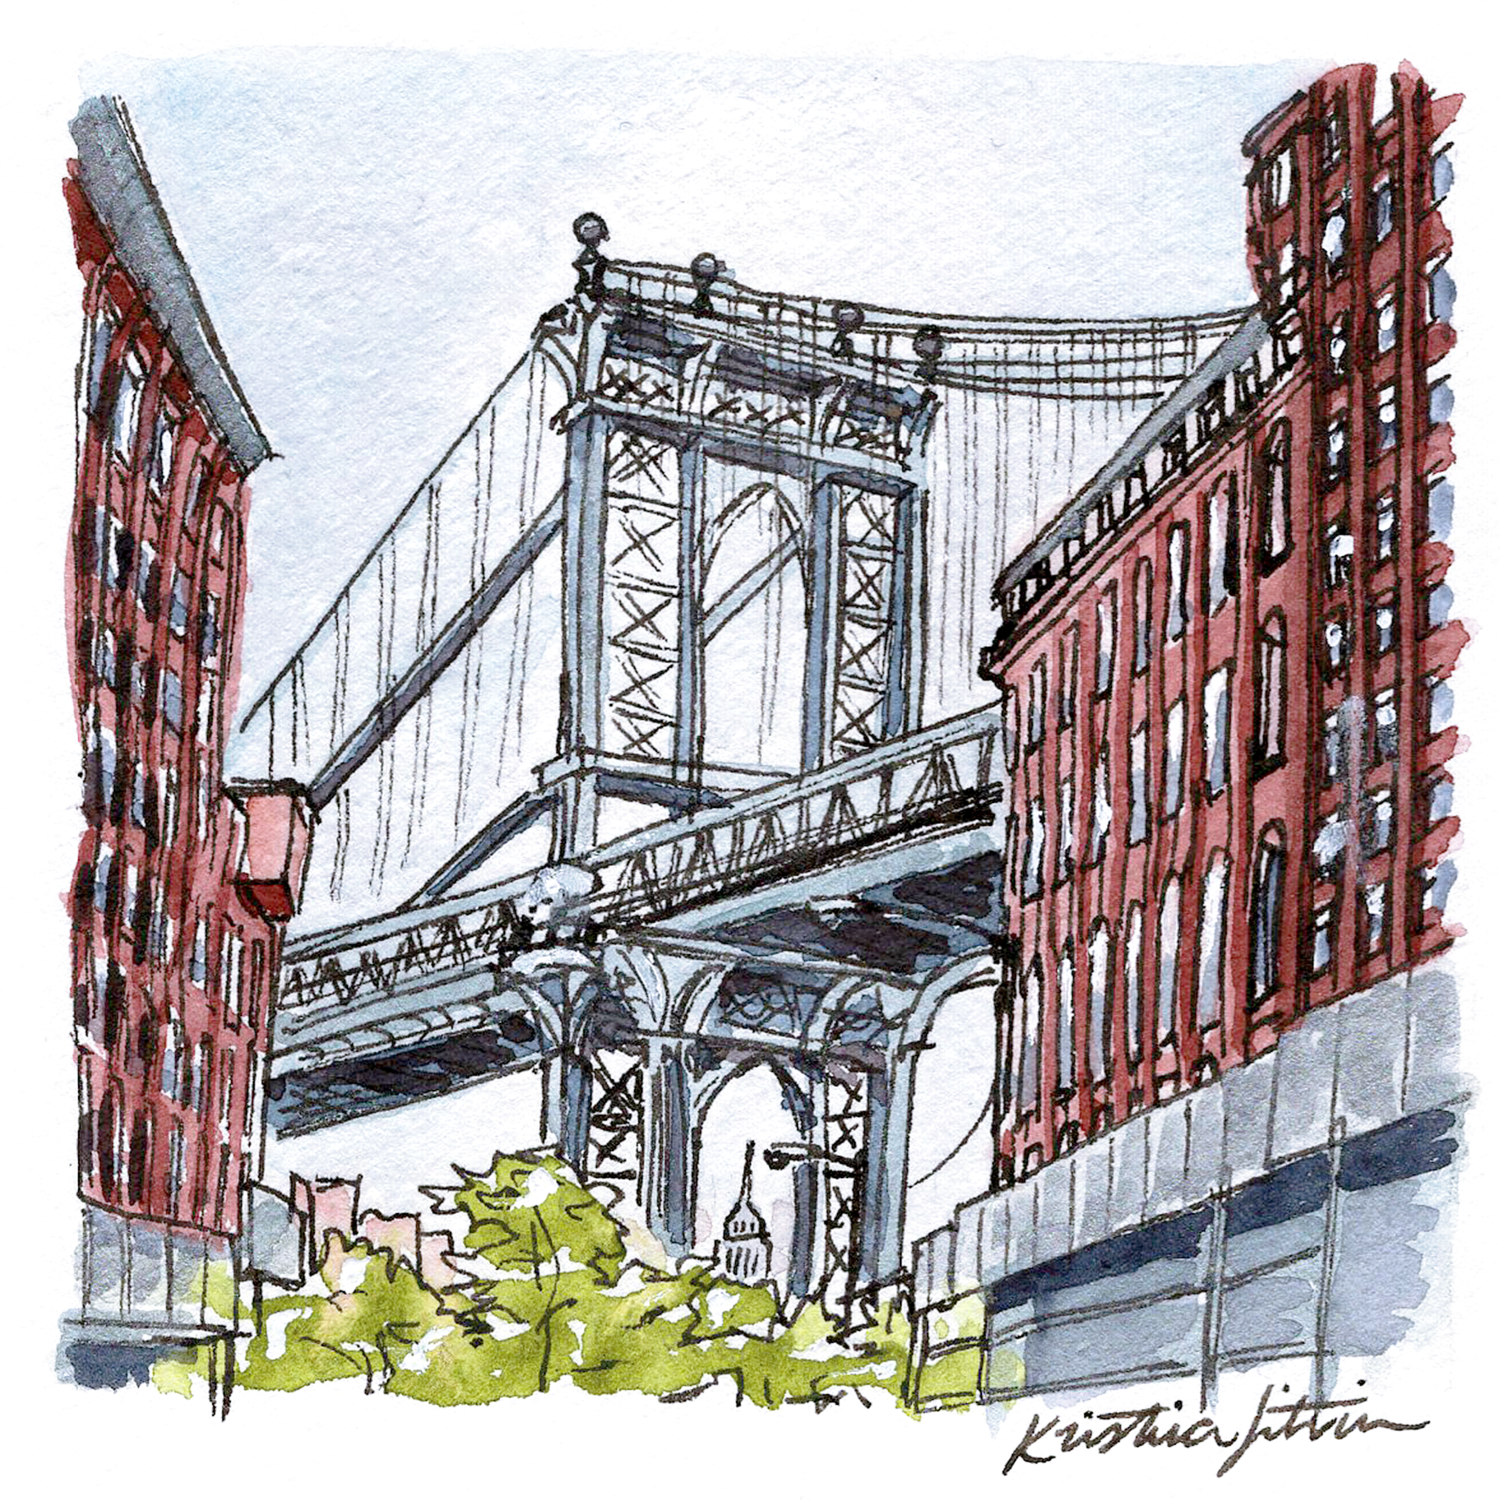 Where there are giants between the bricks. - TRAVEL | DUMBO, BROOKLYN.A scenic view of the Manhattan bridge.